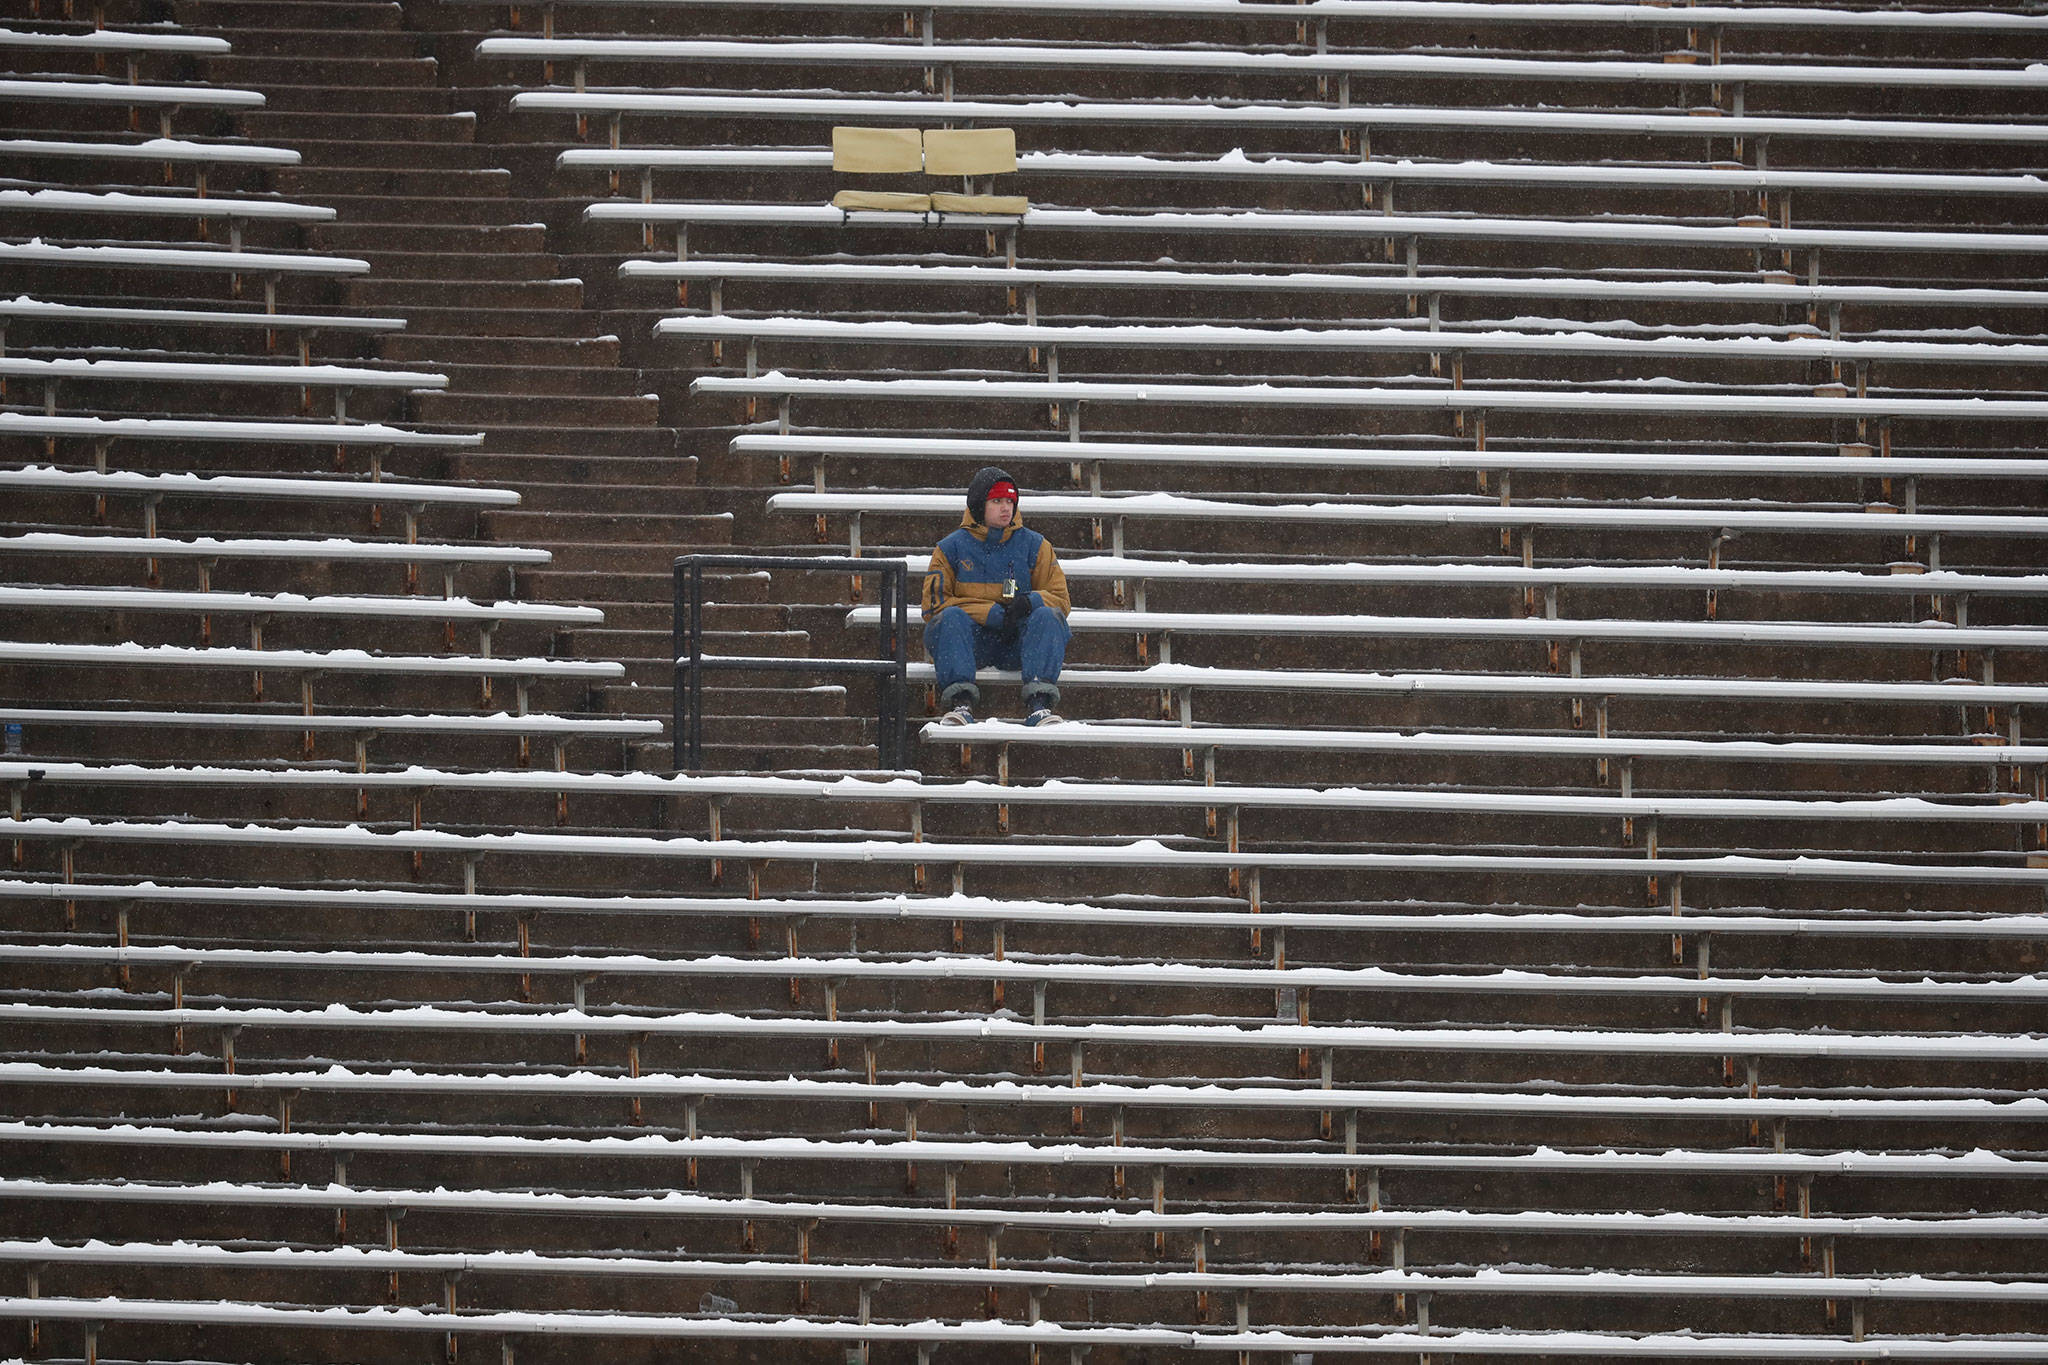 A lone fan sits in the stands during a Pac-12 football game in 2018 in Boulder, Colo. (AP Photo/David Zalubowski)